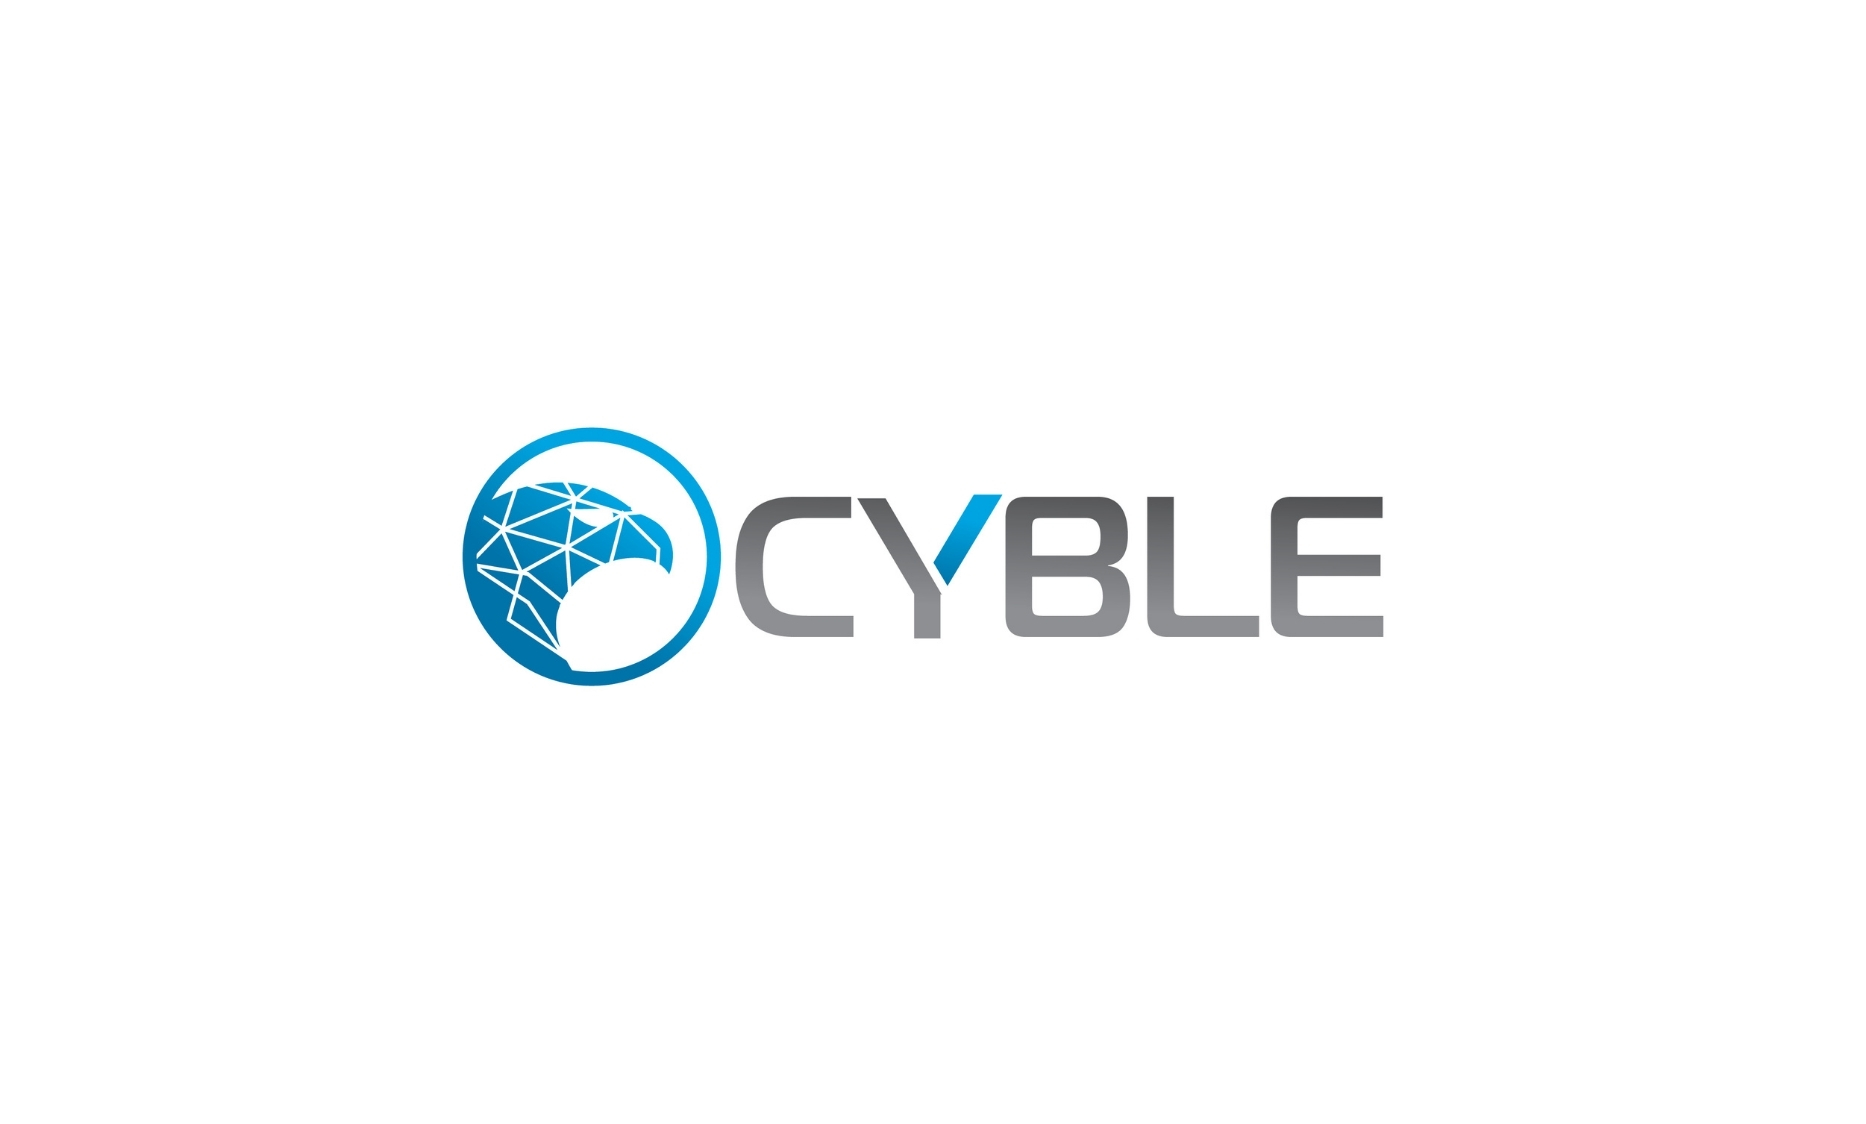 Cyble Announces $4 Million in Seed Funding - Digpu News